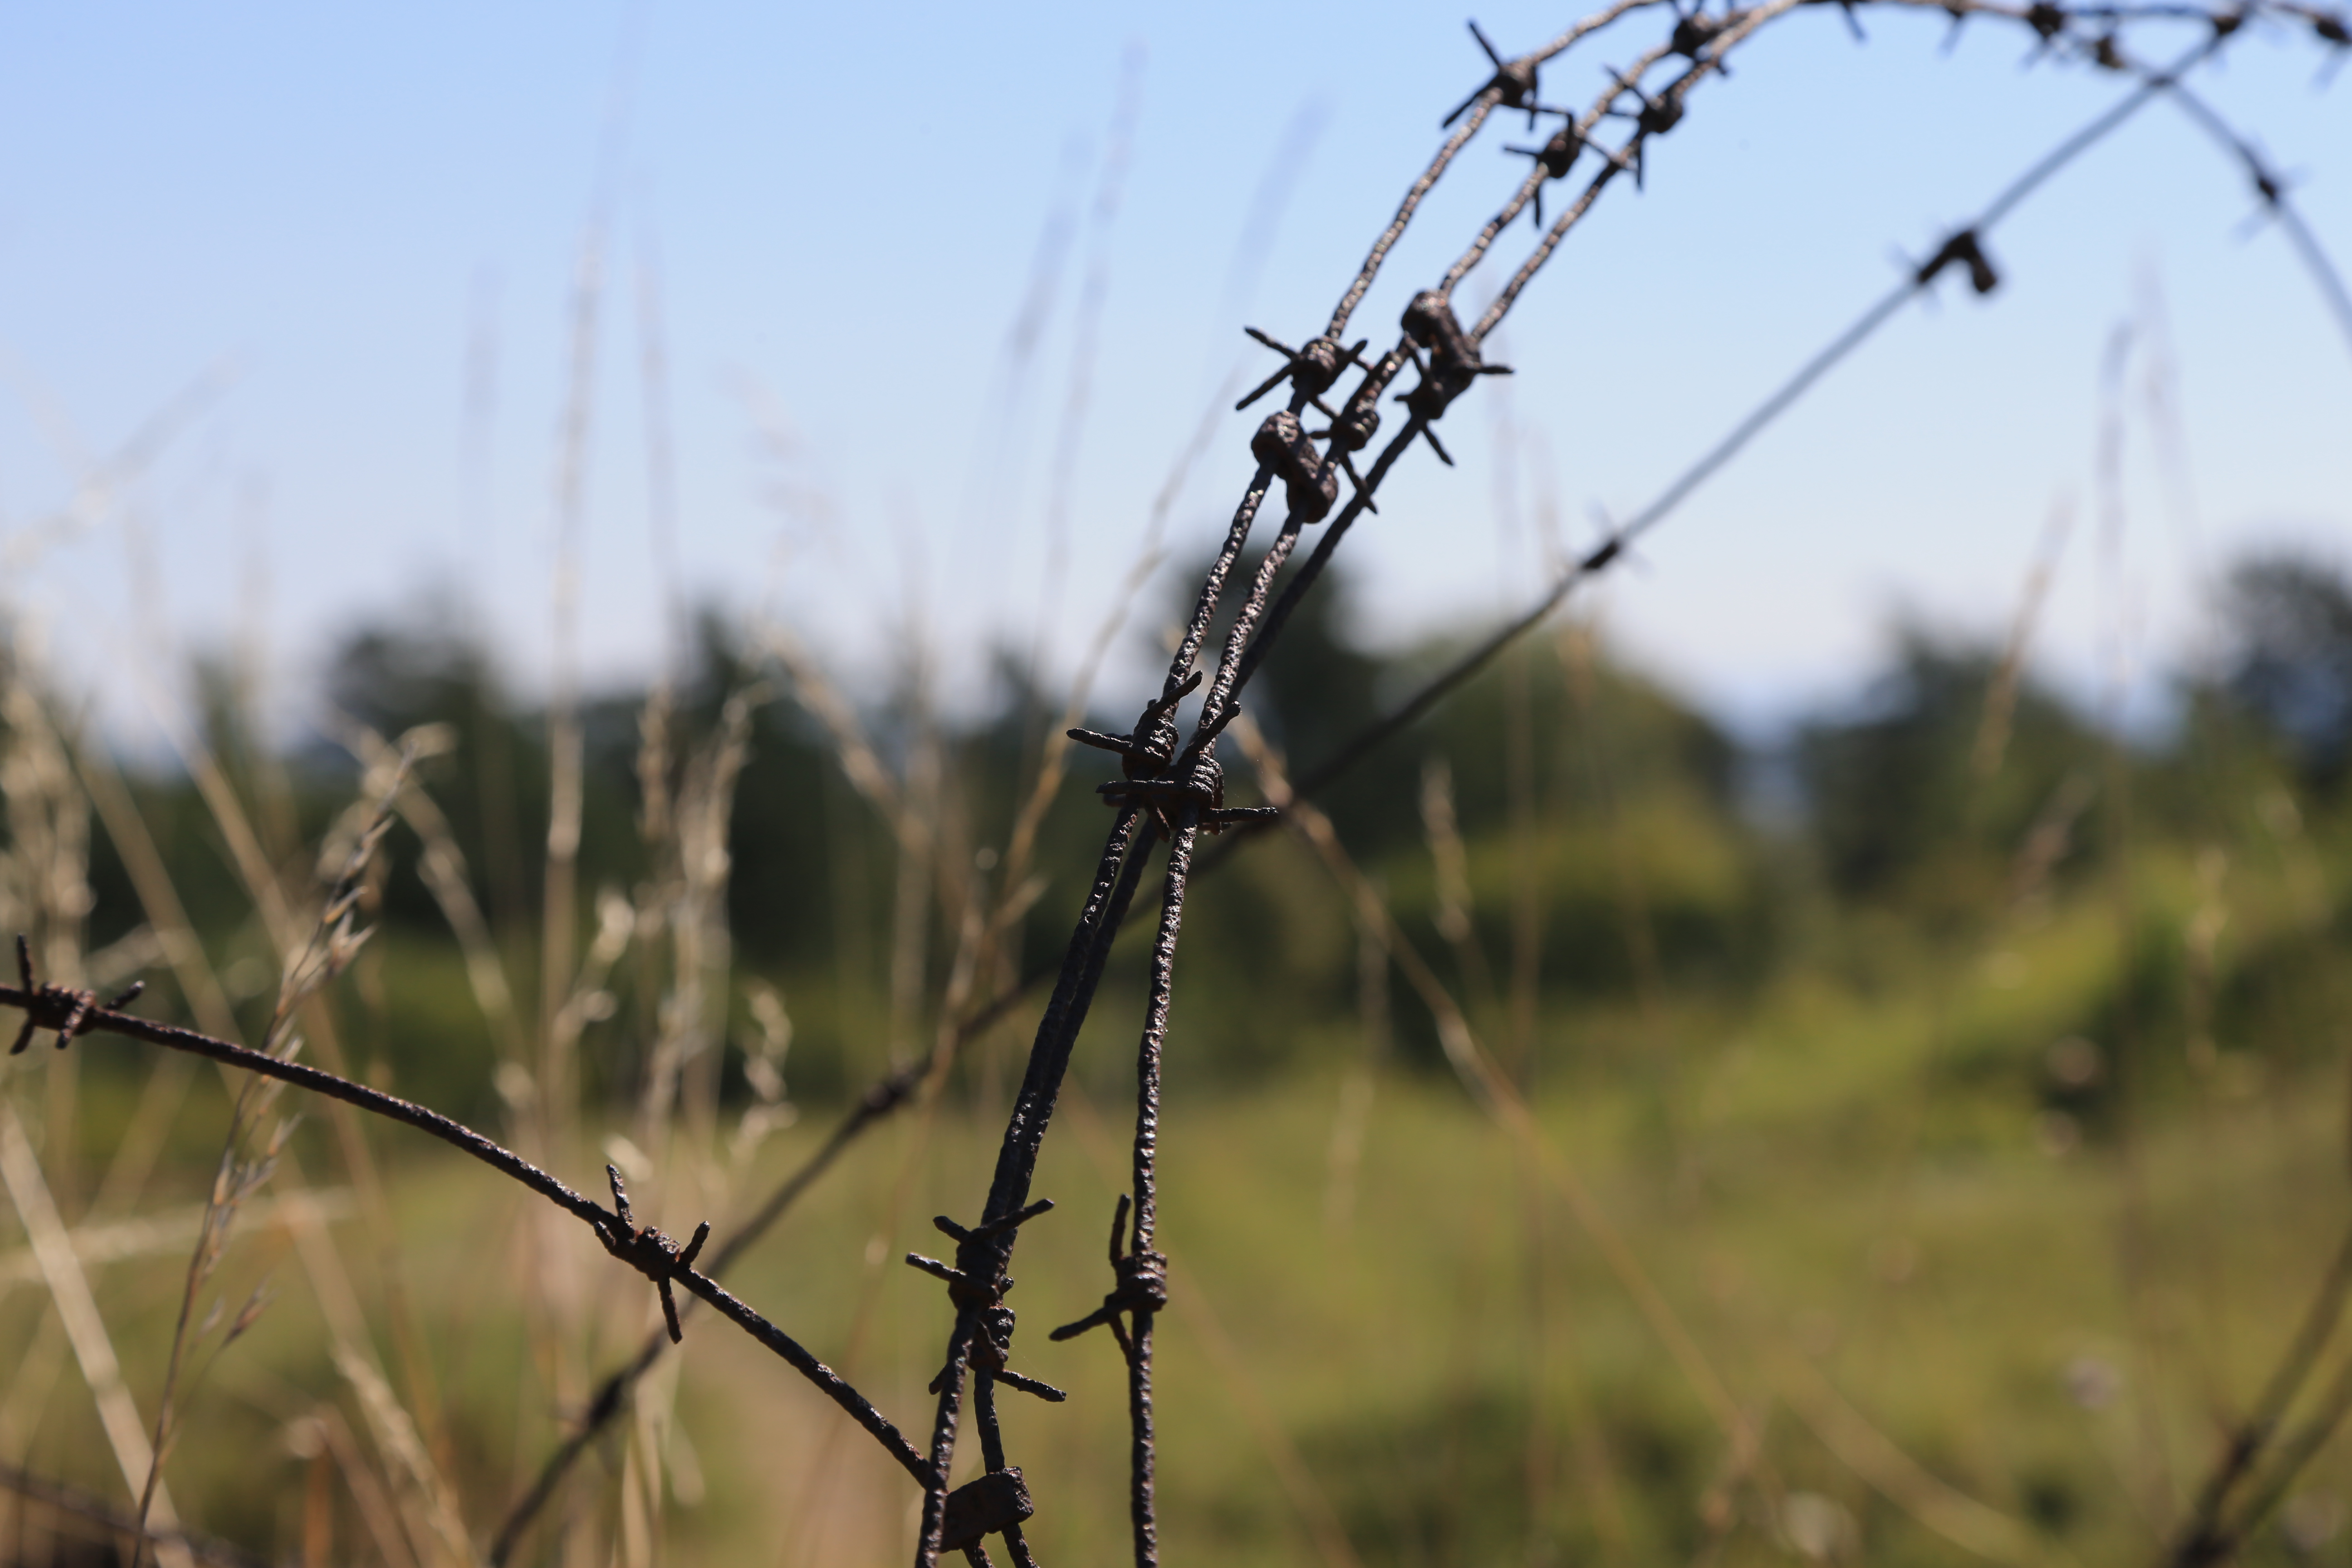 Verdun, Barbed Wire